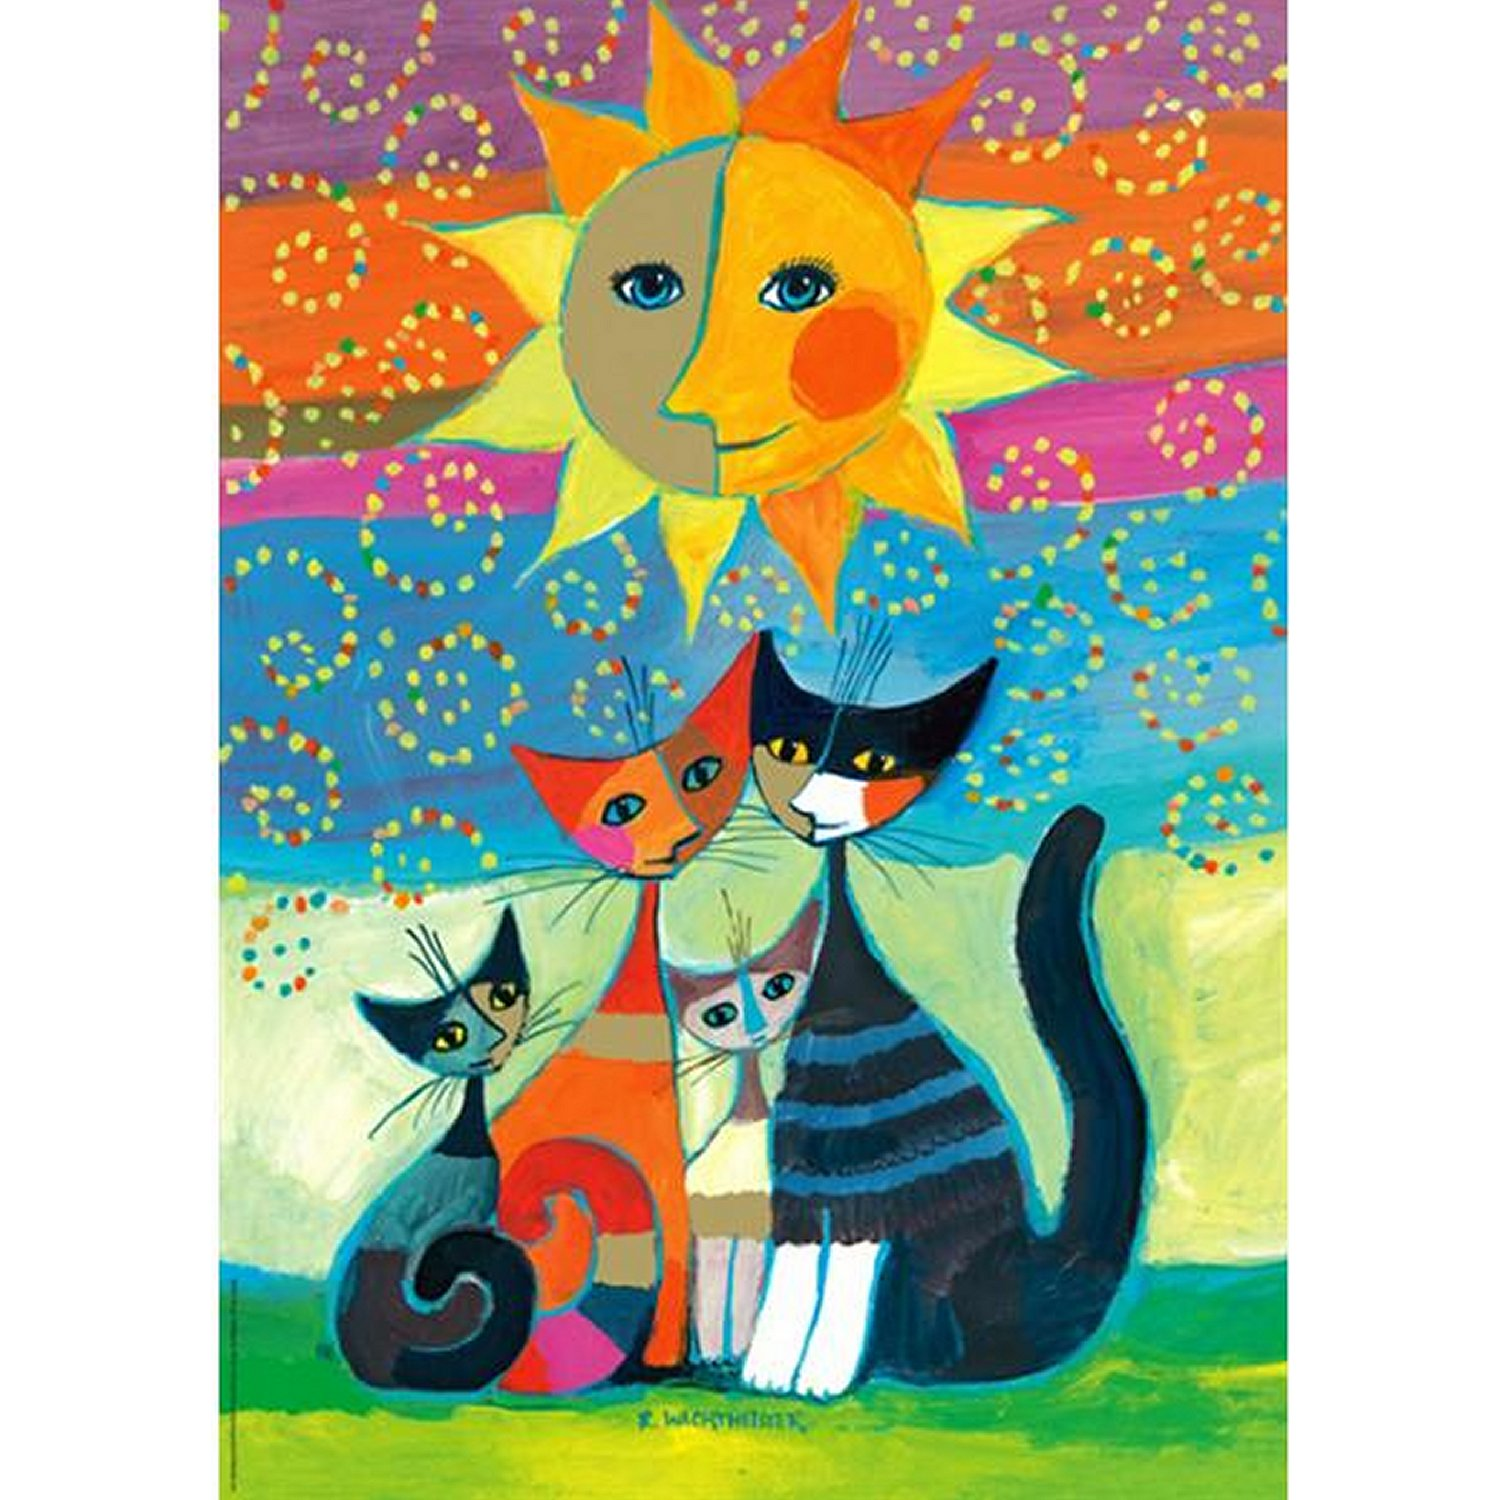 rosina-wachtmeister-le-soleil